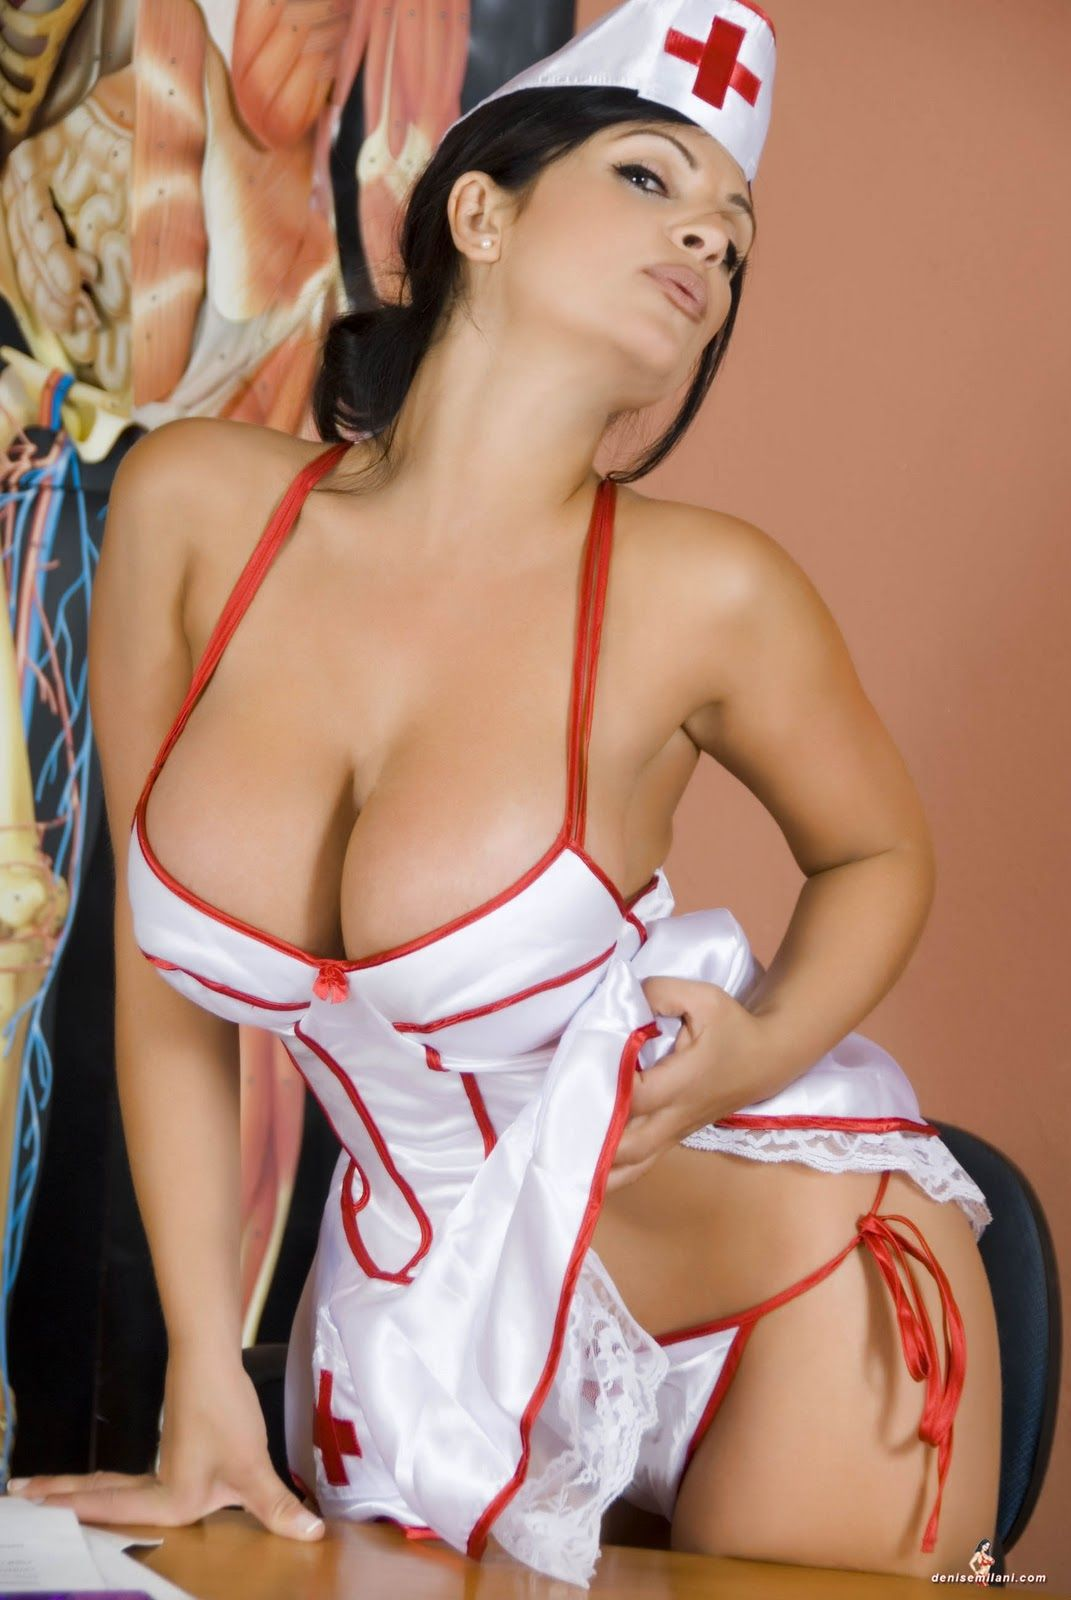 pincall of booty on hot nurses | pinterest | beautiful latina